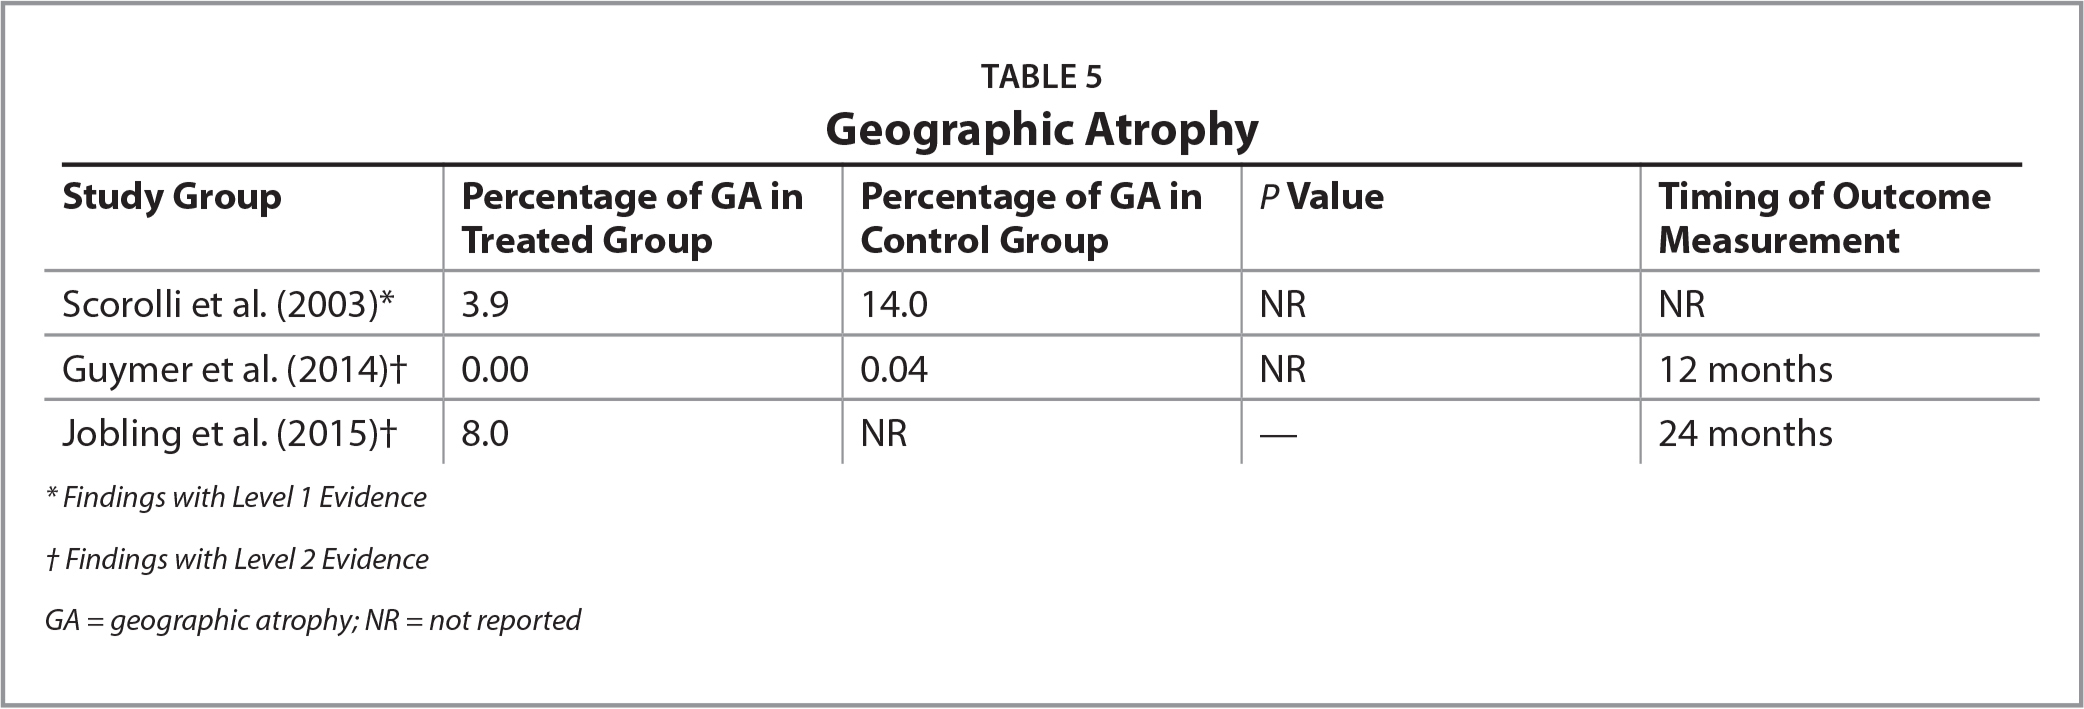 Geographic Atrophy